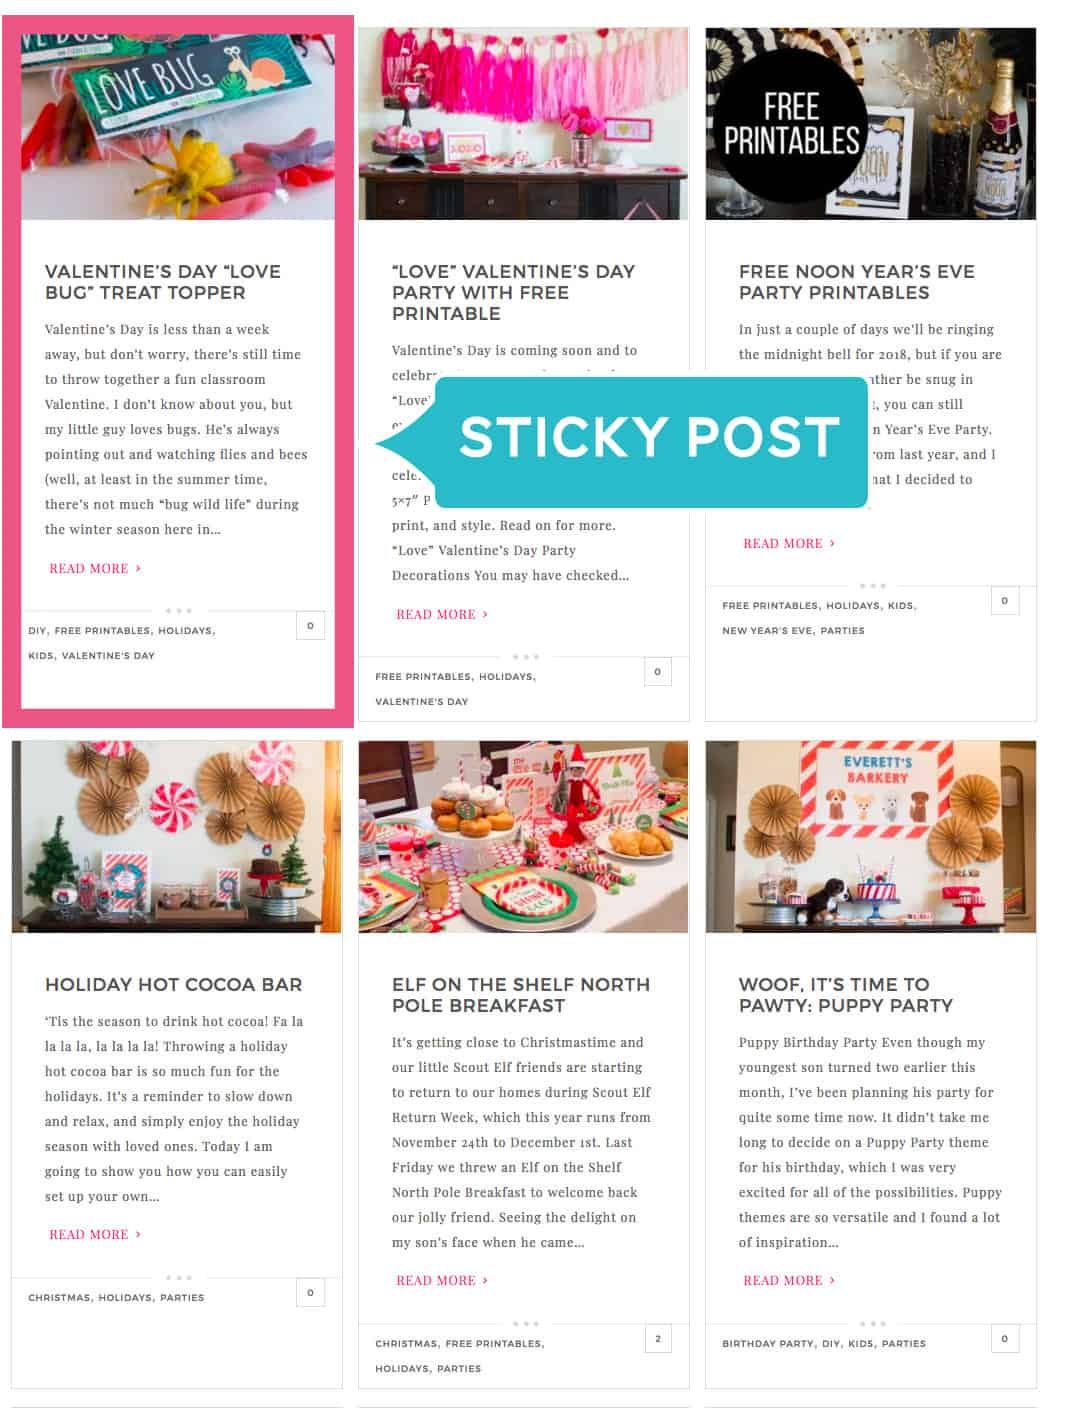 Repurpose your content with sticky posts